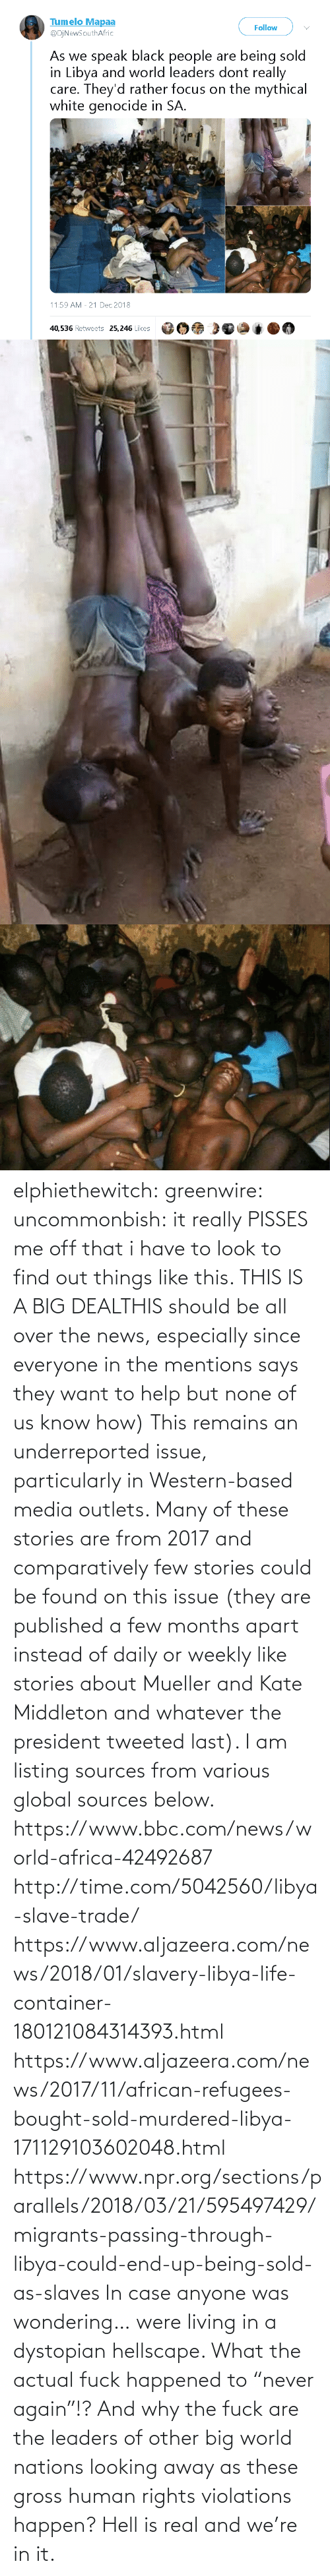 "why: elphiethewitch: greenwire:  uncommonbish:  it really PISSES me off that i have to look to find out things like this. THIS IS A BIG DEALTHIS should be all over the news, especially since everyone in the mentions says they want to help but none of us know how)  This remains an underreported issue, particularly in Western-based media outlets. Many of these stories are from 2017 and comparatively few stories could be found on this issue (they are published a few months apart instead of daily or weekly like stories about Mueller and Kate Middleton and whatever the president tweeted last). I am listing sources from various global sources below.  https://www.bbc.com/news/world-africa-42492687 http://time.com/5042560/libya-slave-trade/ https://www.aljazeera.com/news/2018/01/slavery-libya-life-container-180121084314393.html https://www.aljazeera.com/news/2017/11/african-refugees-bought-sold-murdered-libya-171129103602048.html https://www.npr.org/sections/parallels/2018/03/21/595497429/migrants-passing-through-libya-could-end-up-being-sold-as-slaves   In case anyone was wondering… were living in a dystopian hellscape.  What the actual fuck happened to ""never again""!? And why the fuck are the leaders of other big world nations looking away as these gross human rights violations happen?  Hell is real and we're in it."